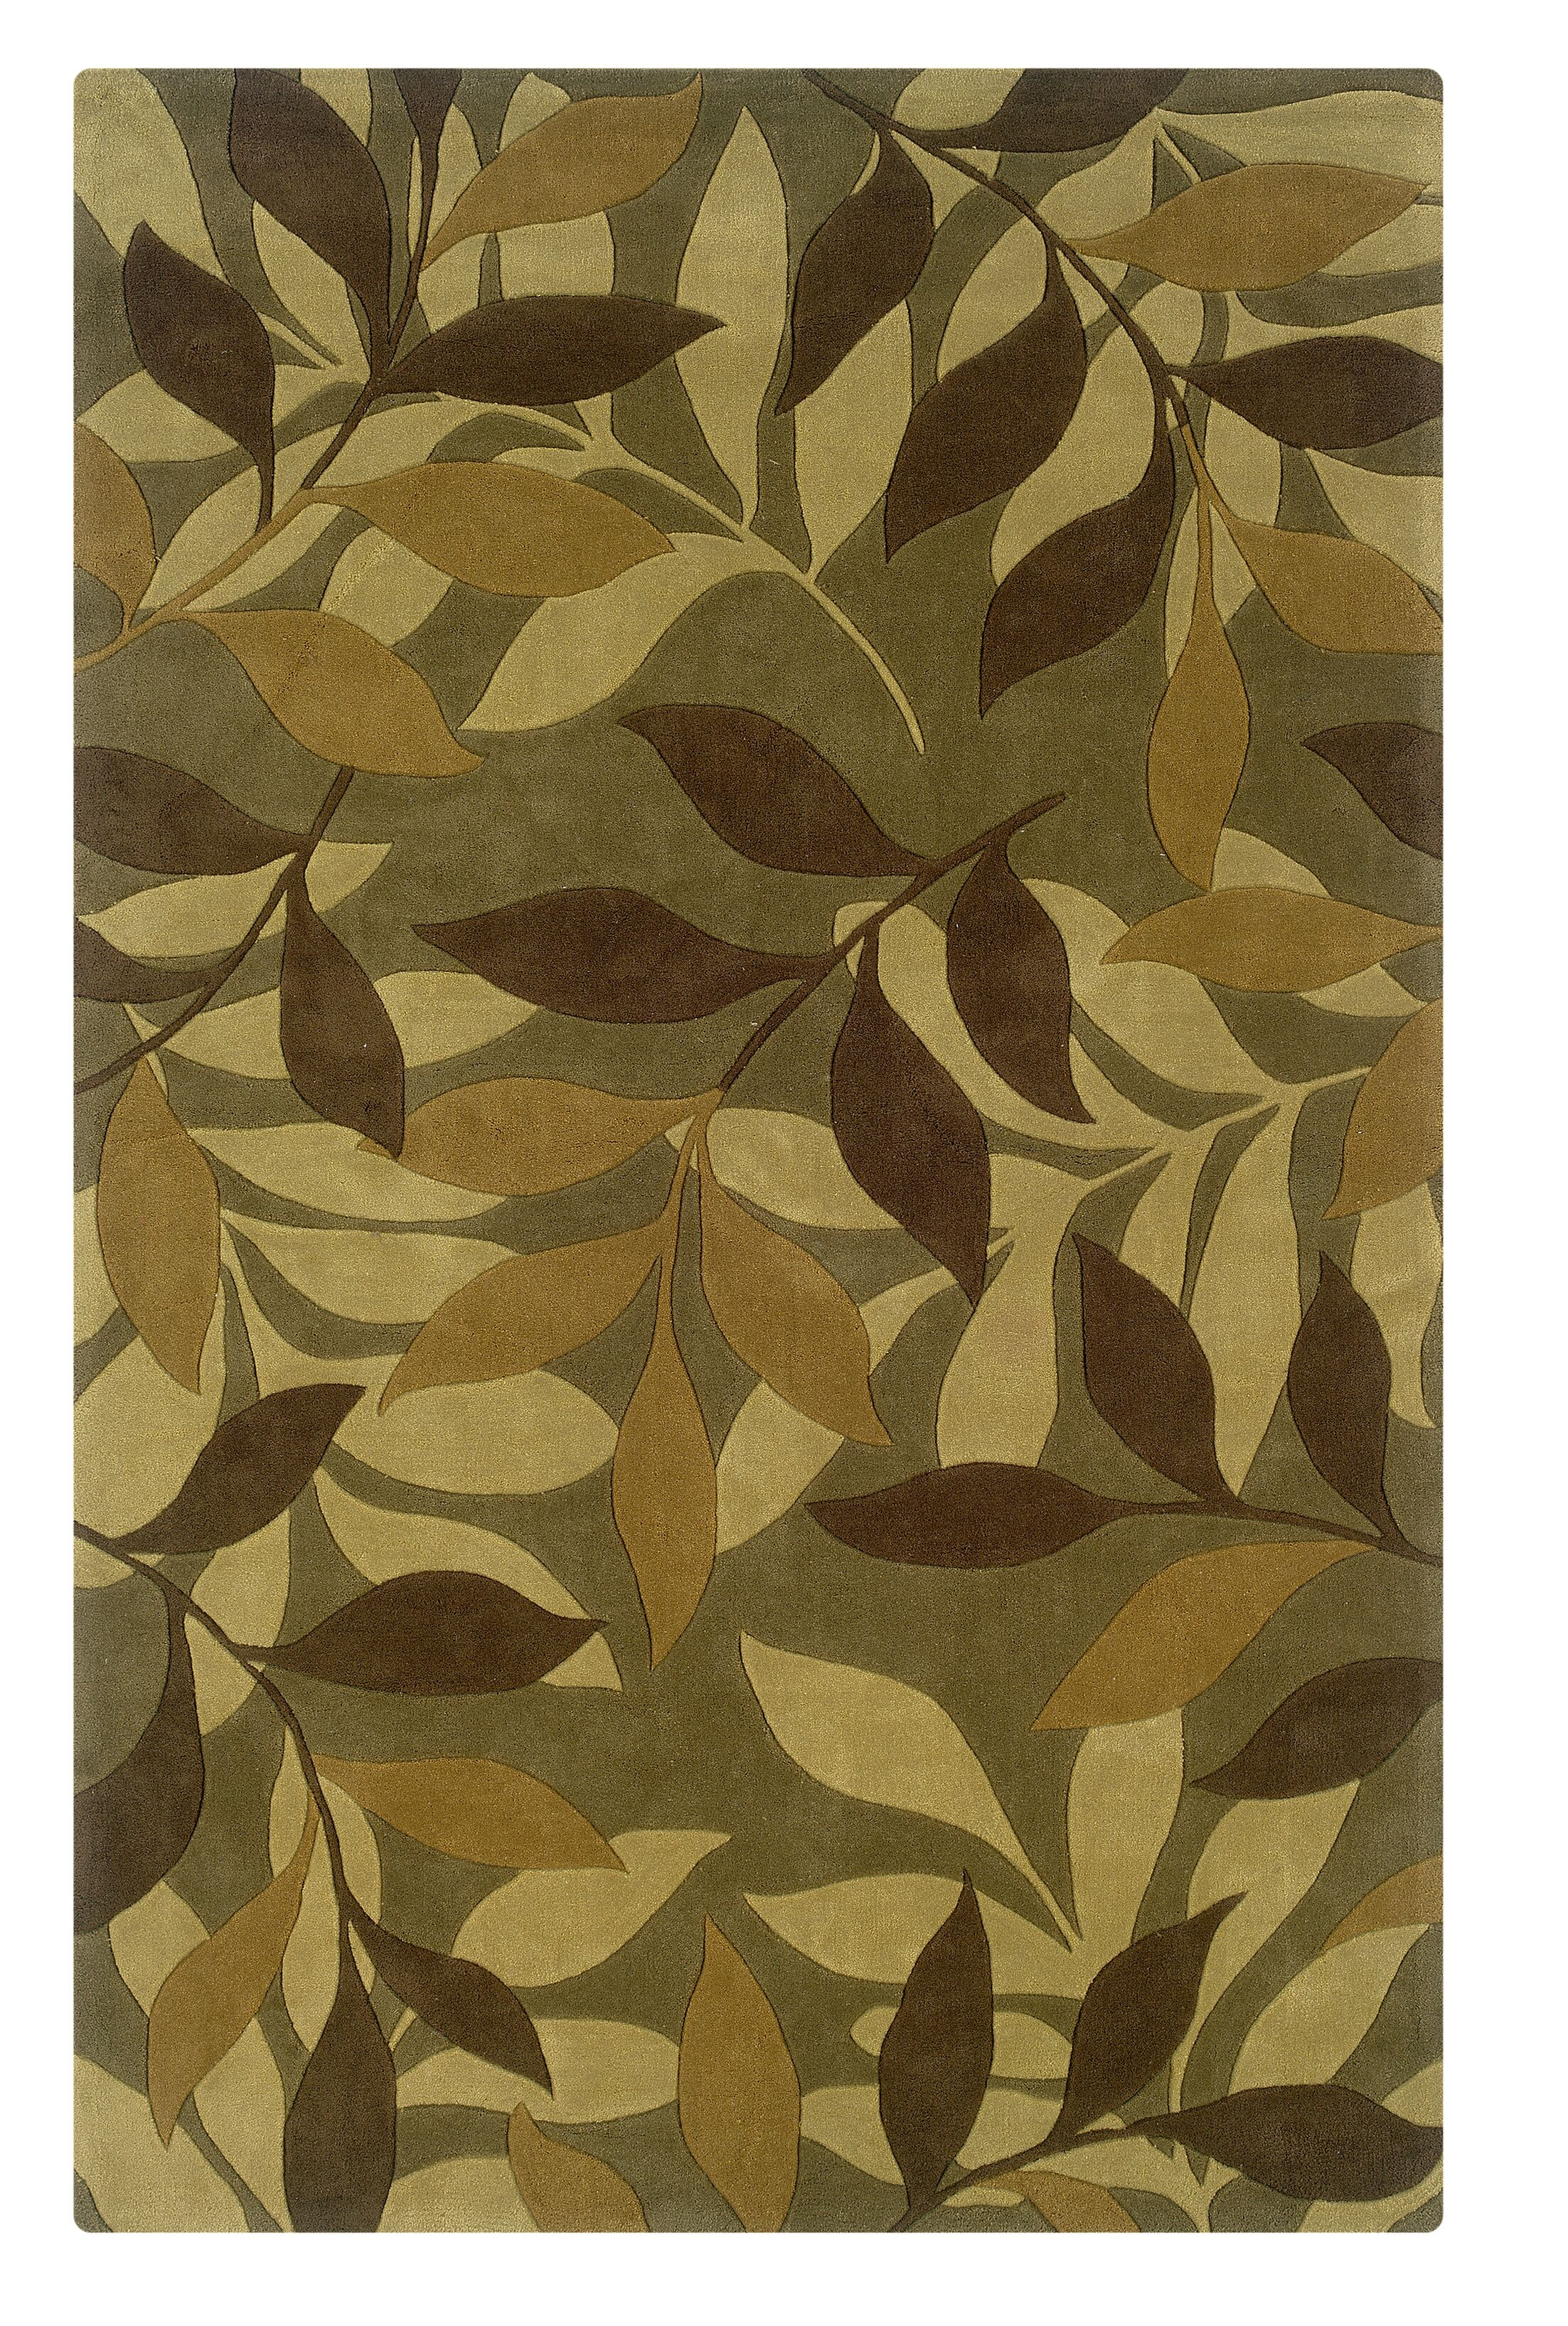 Safford Hand-Tufted Green/Brown Area Rug Rug Size: Rectangle 8' x 10'